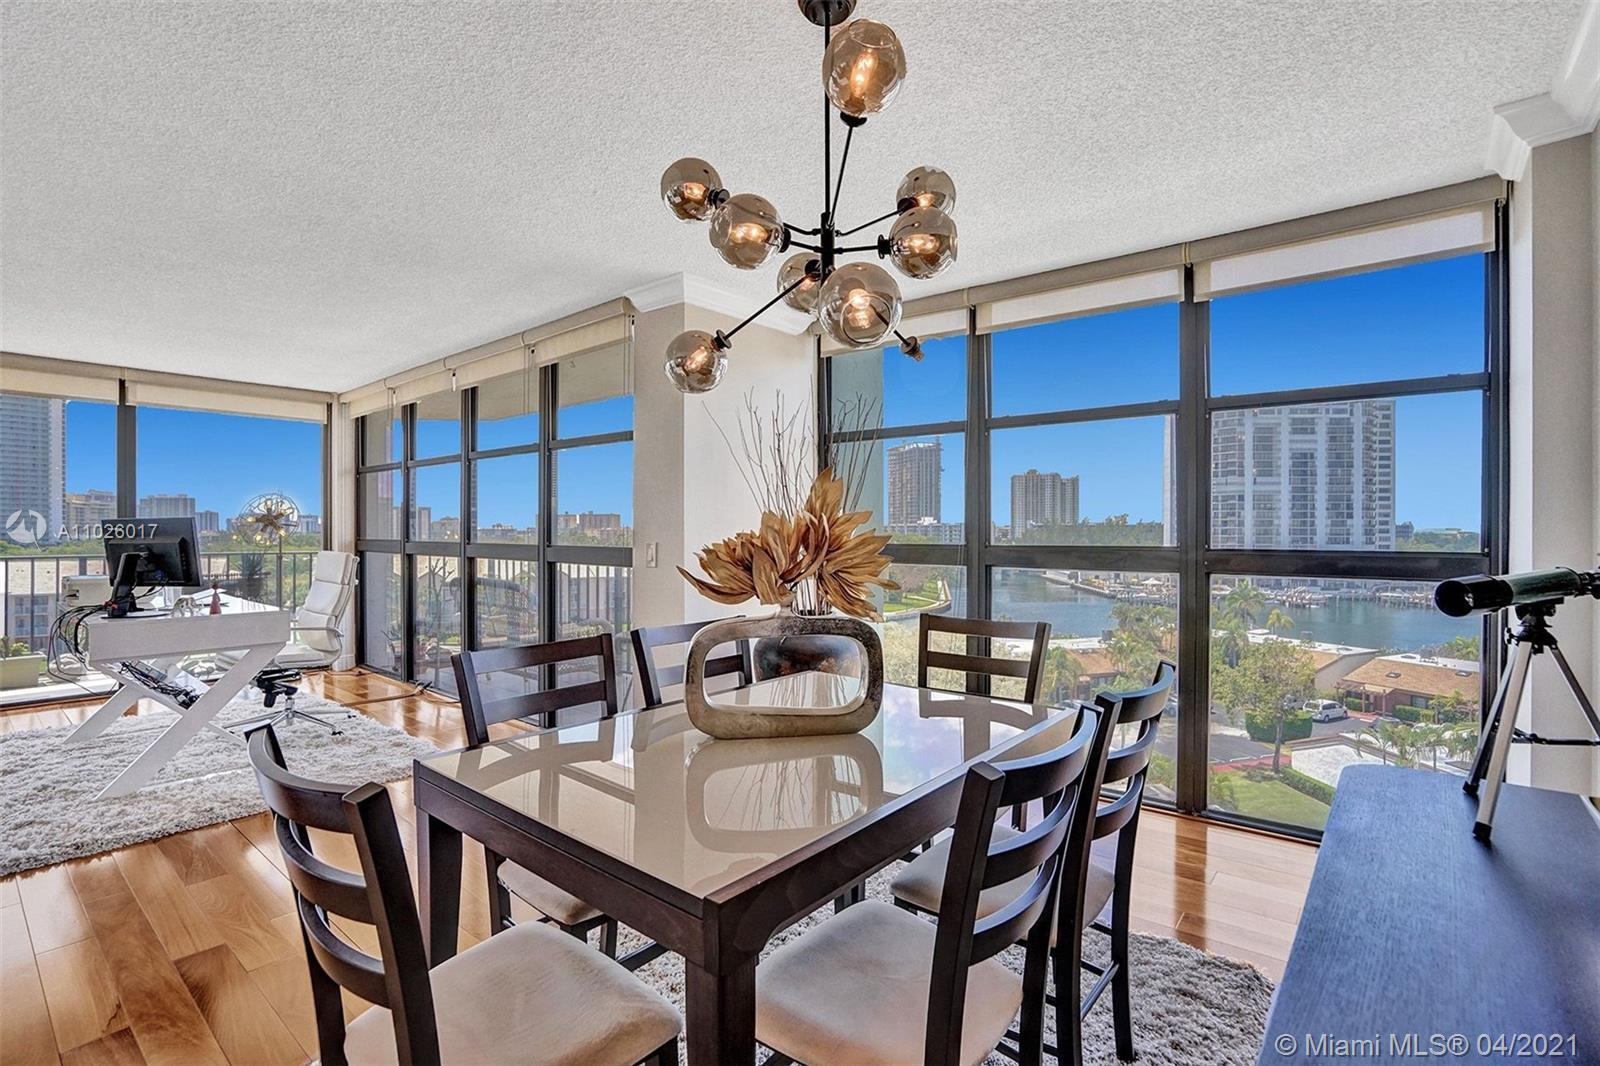 Stunning views from this beautiful corner unit with floor to ceiling windows. Direct views on the in